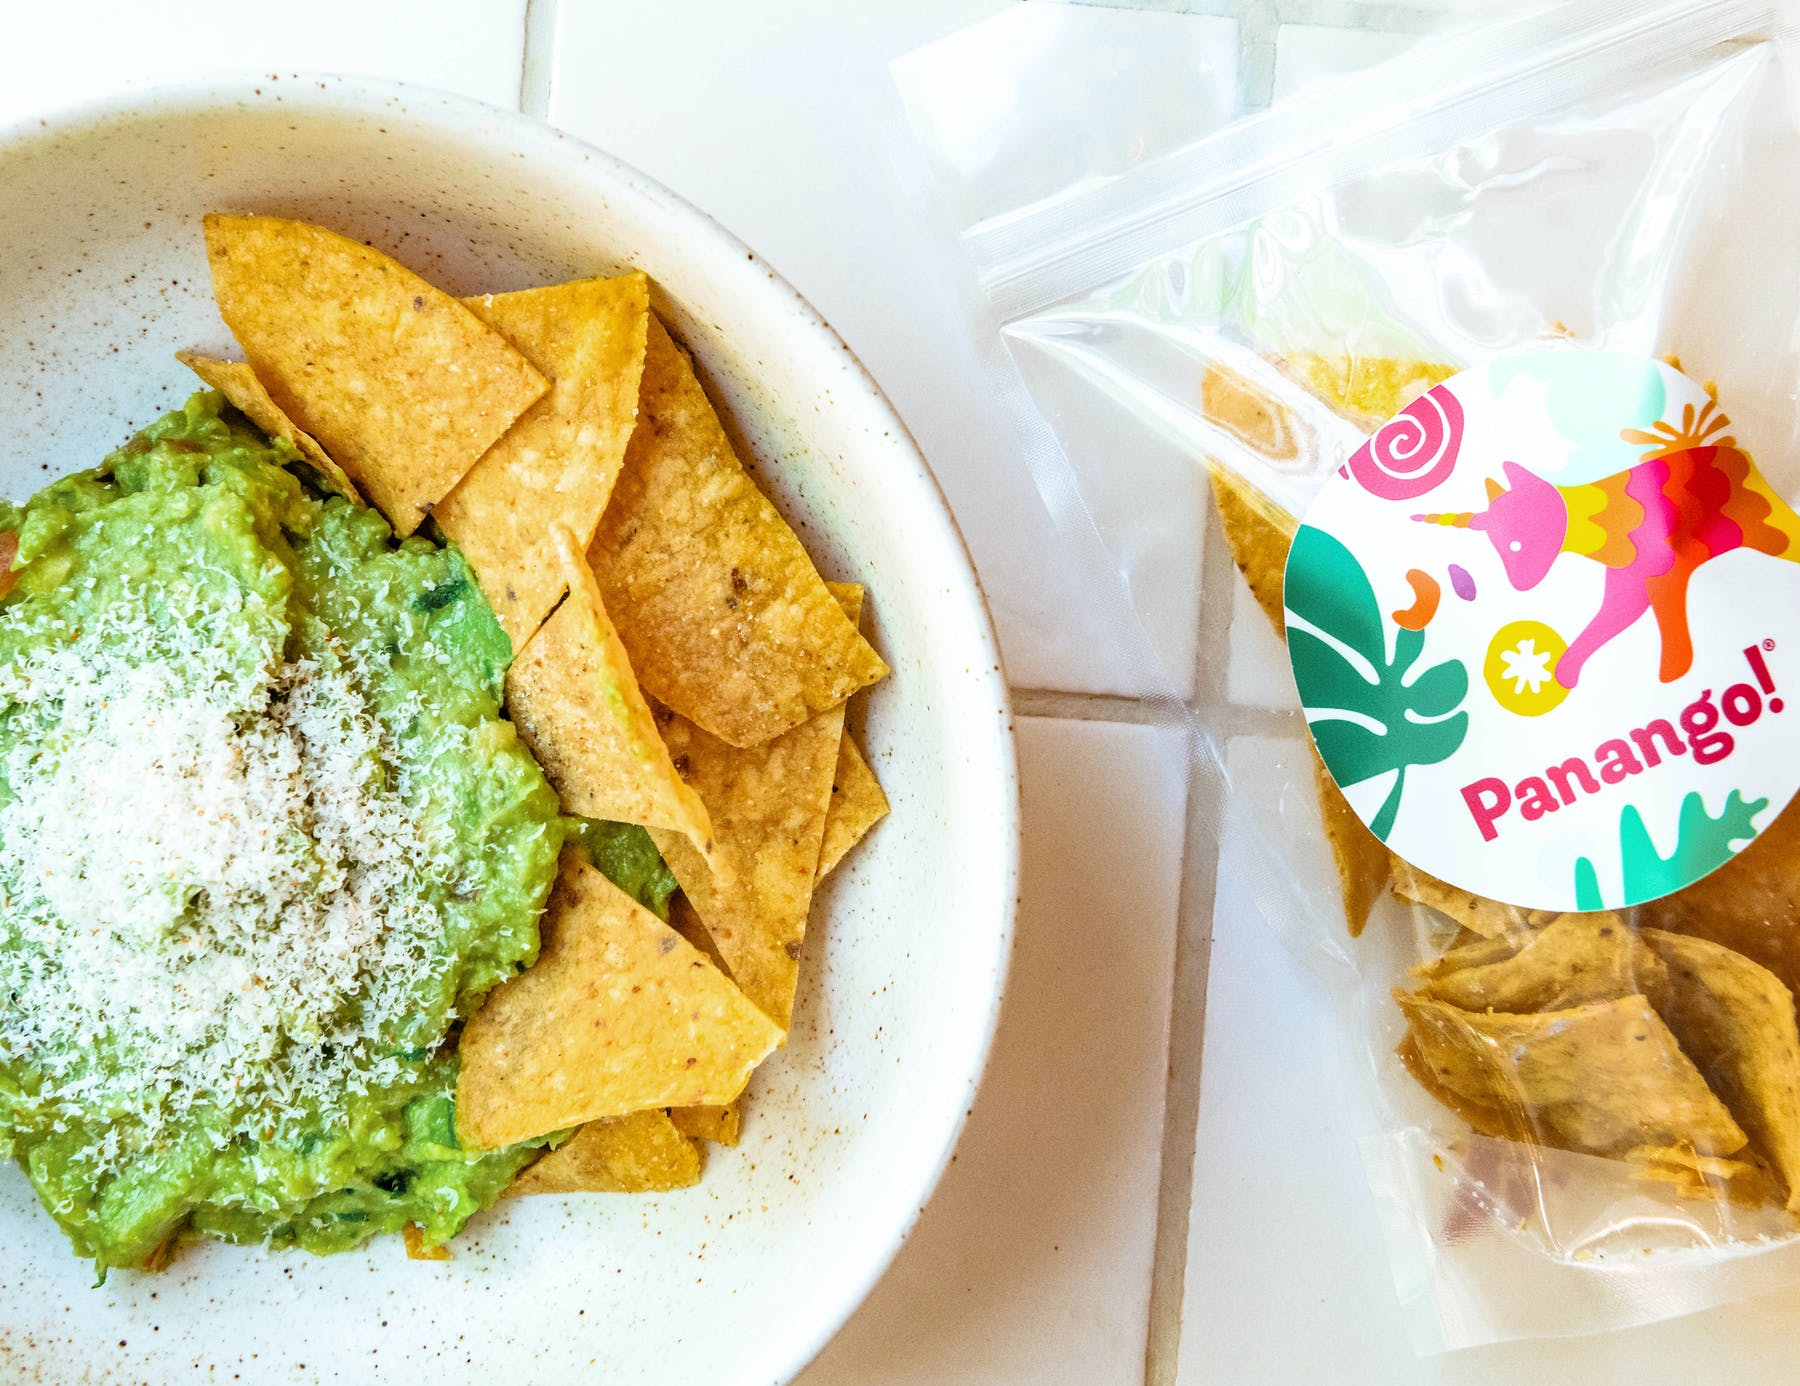 a plate of nachos and guacamole